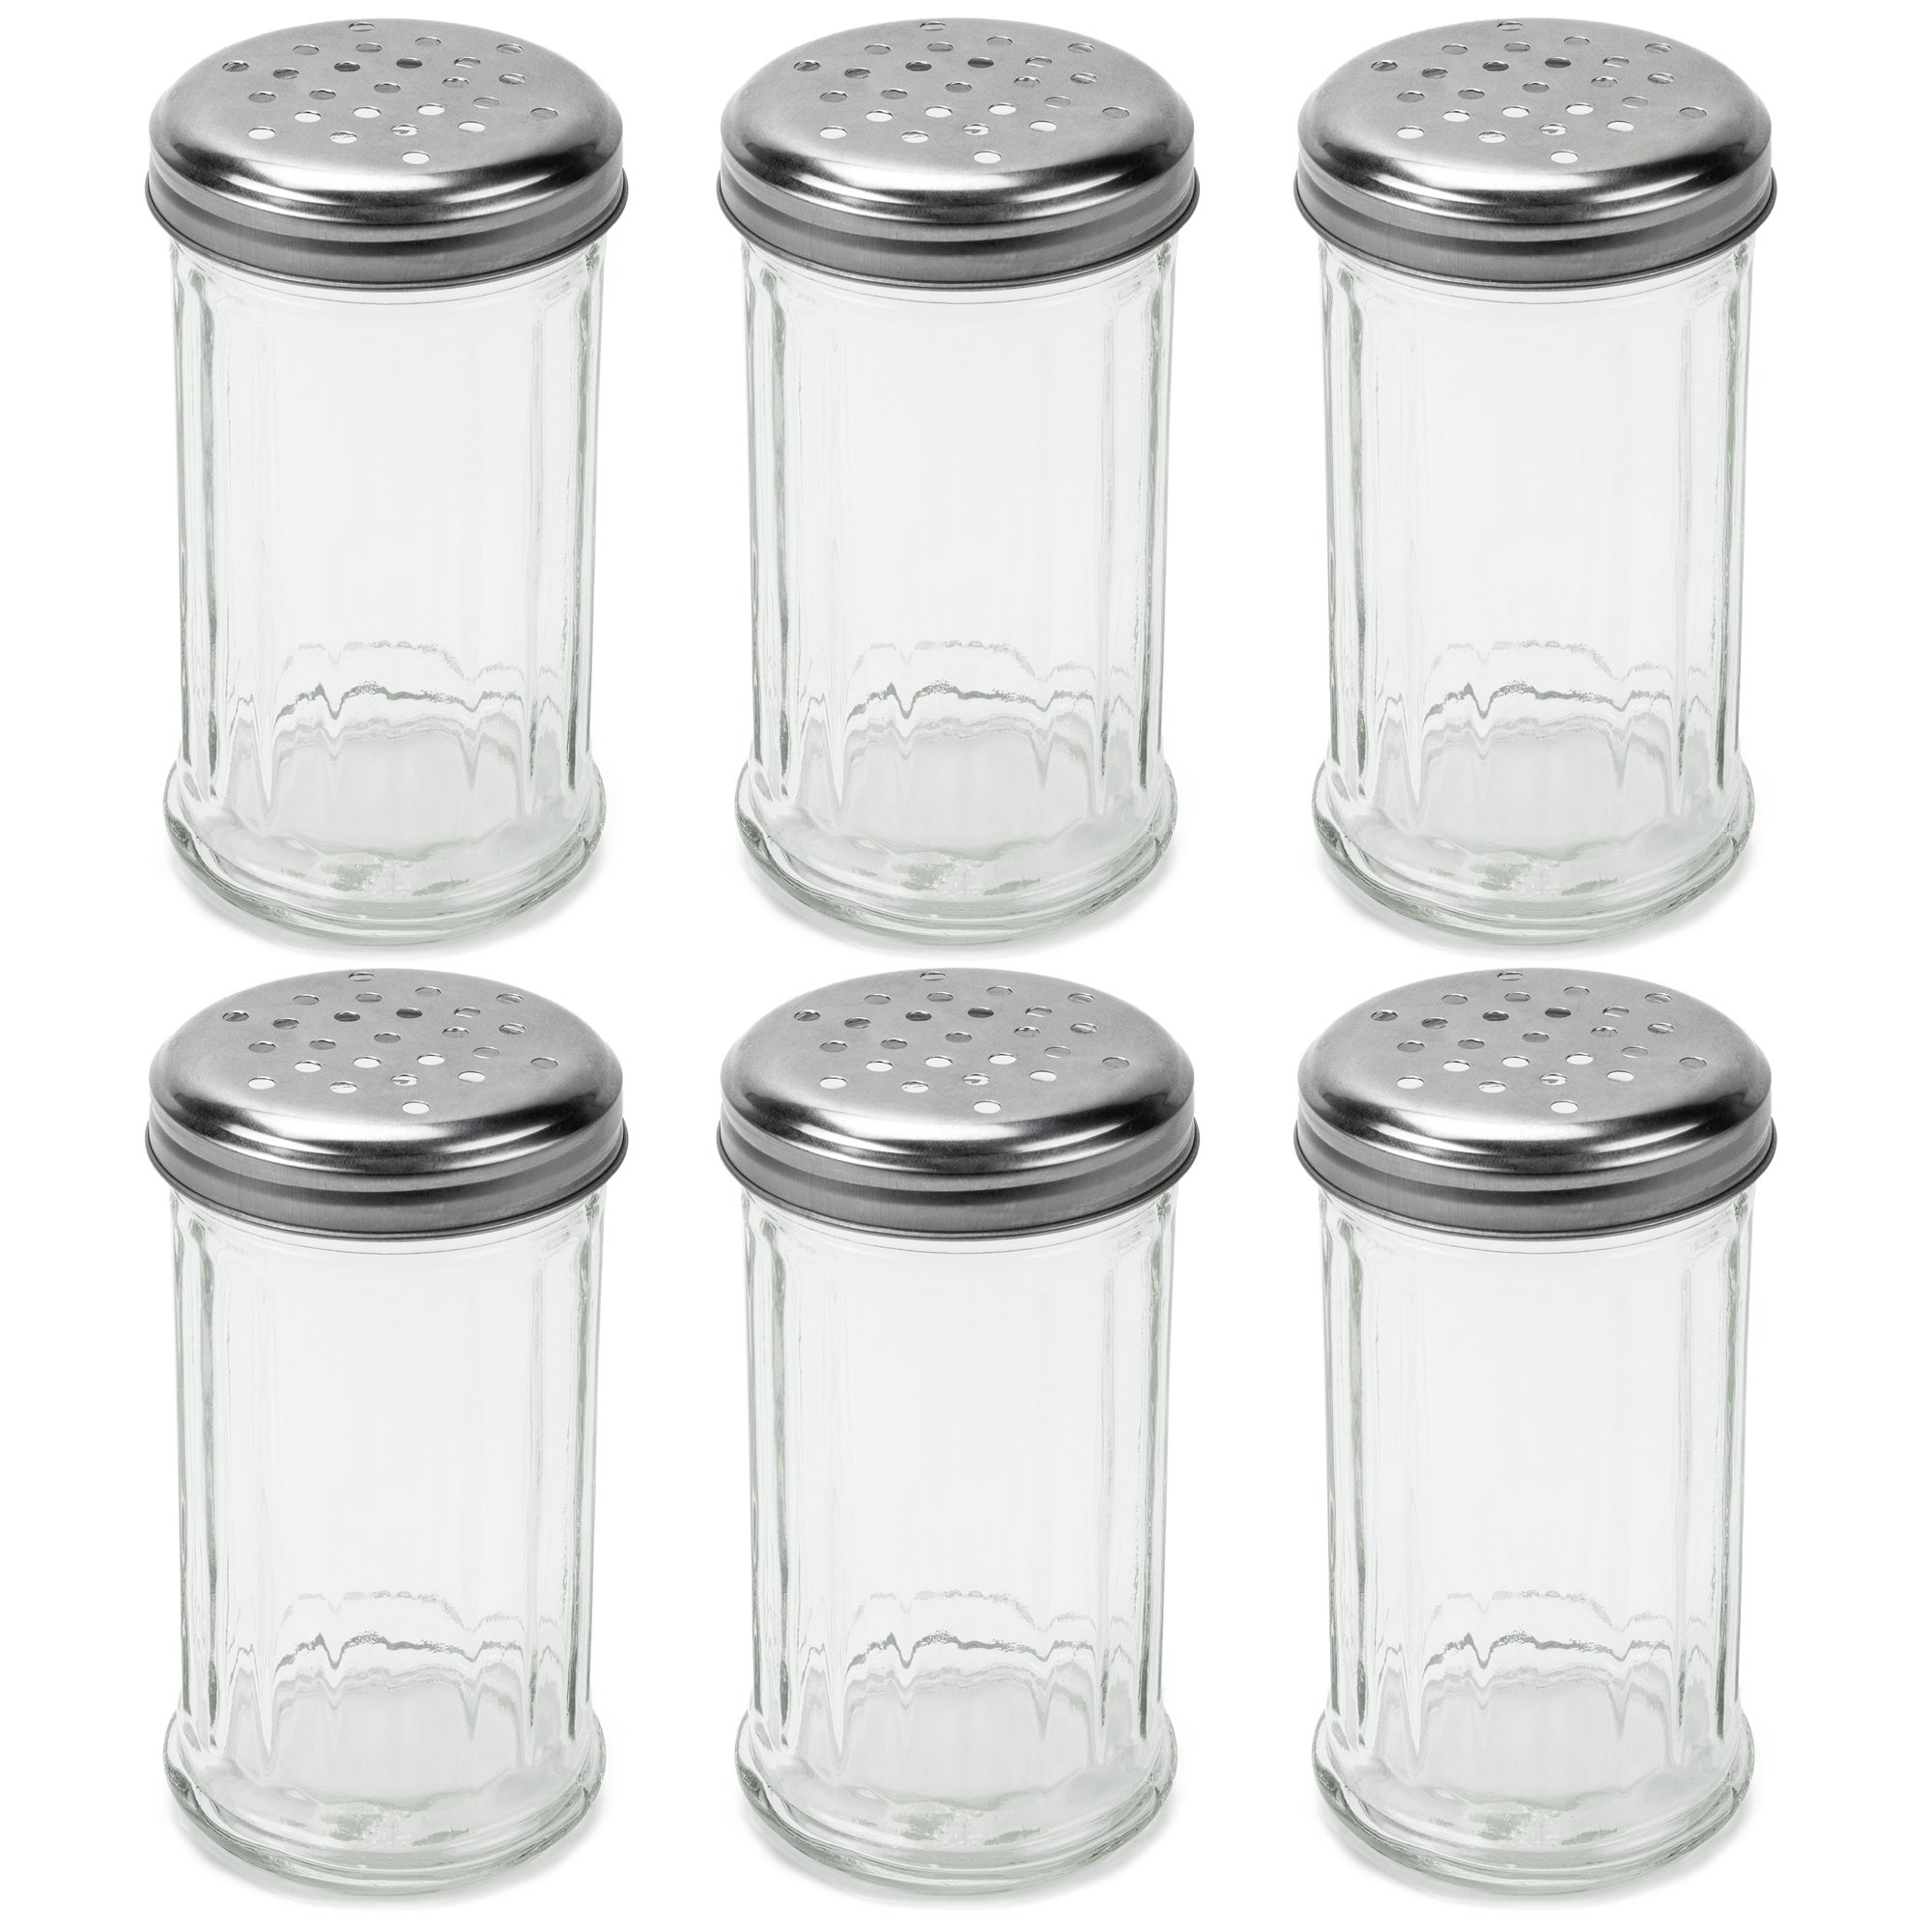 Set of 6 Spice & Cheese Shakers - 12 oz. Glass Server with Metal Lid for Parmesan and Mozzarella by Back of House Ltd.